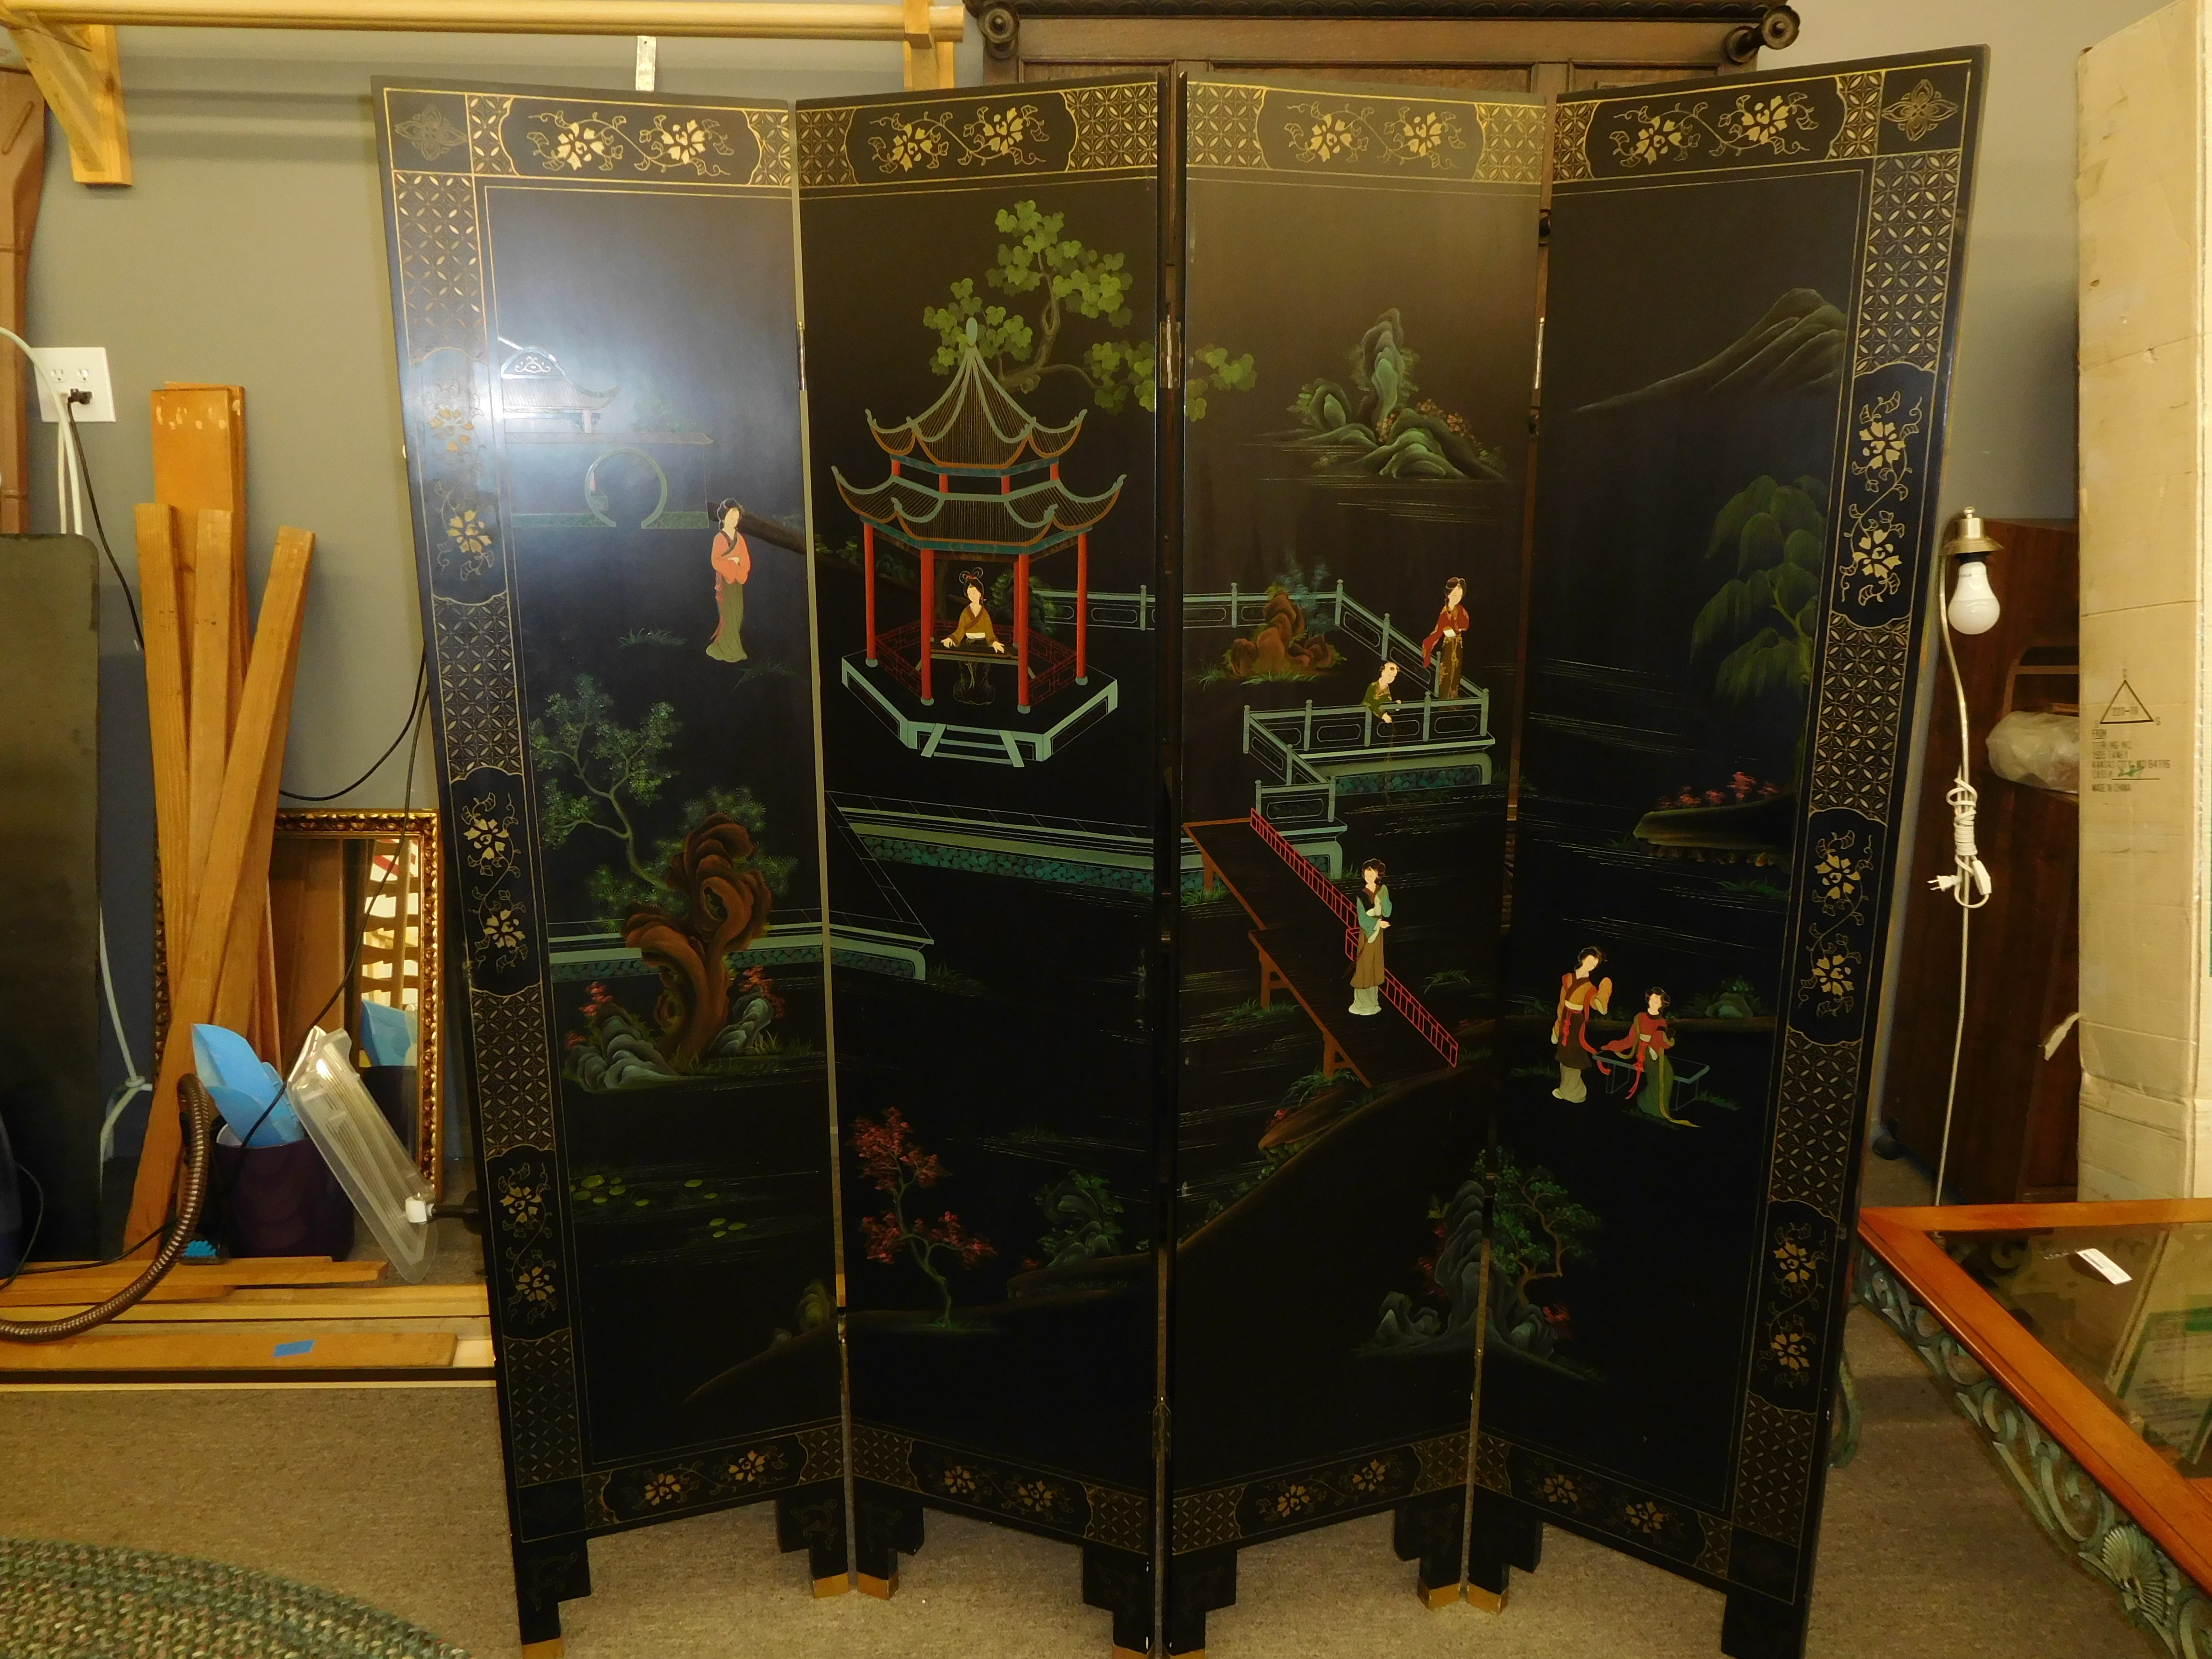 Vintage Asian Folding Screen/Room Divider - Black Painted Wood with Brass Hardware